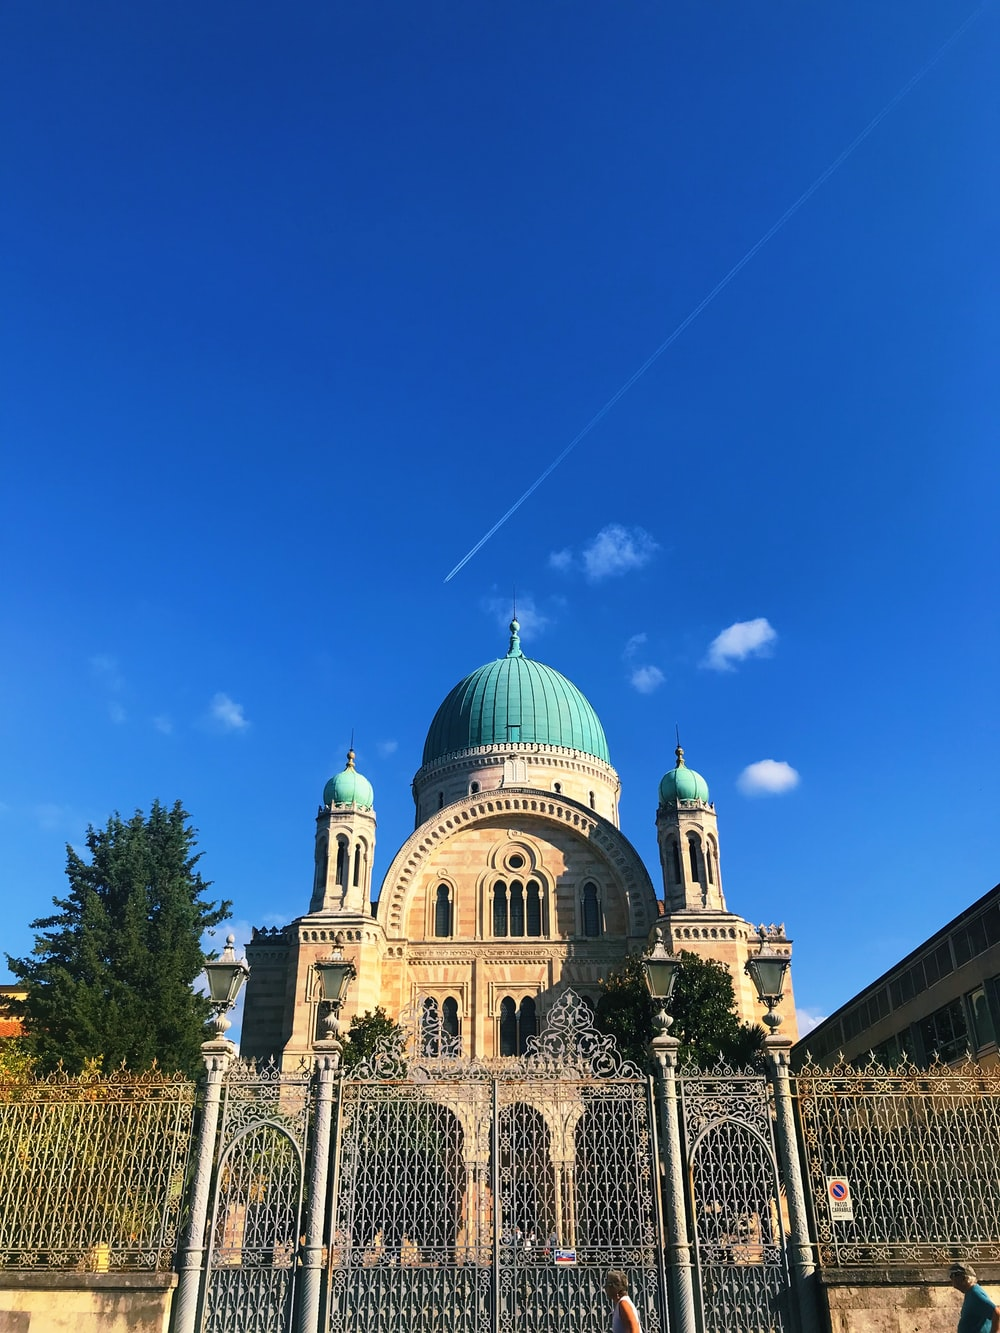 white and green dome building under blue sky during daytime